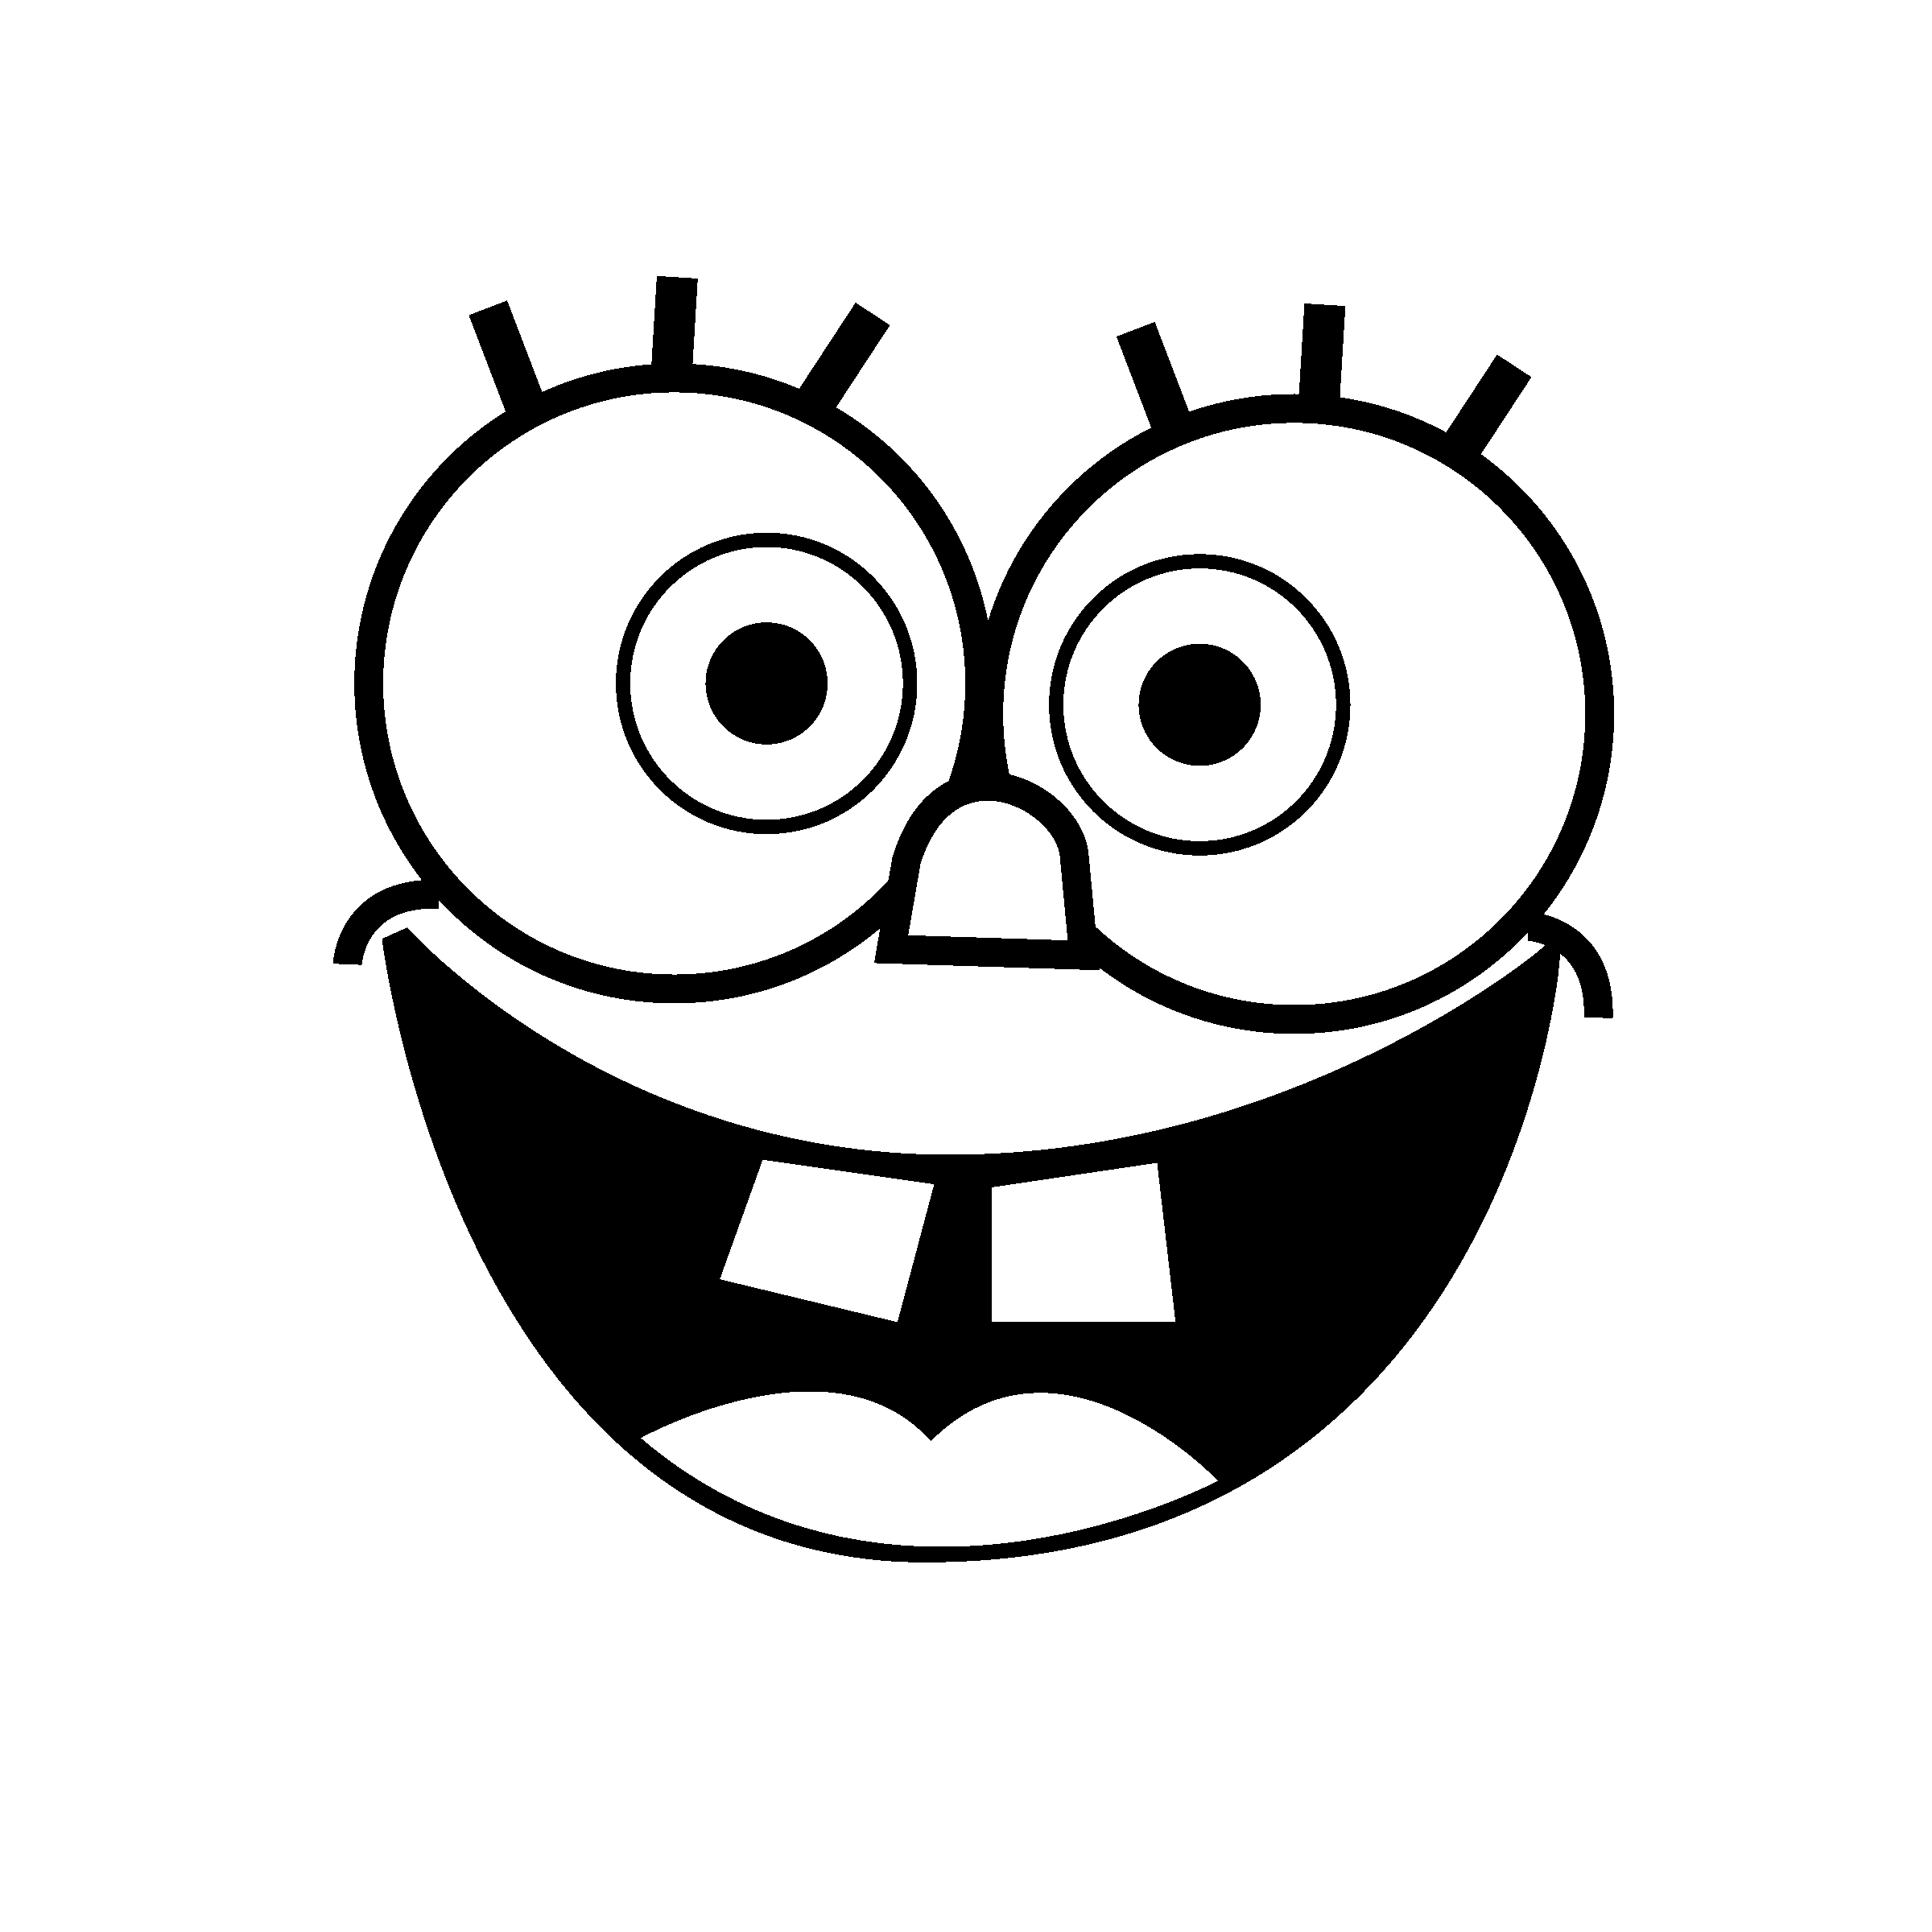 black and white pictures of spongebob squarepants spongebob squarepants coloring page 05 coloring page central pictures white squarepants spongebob of black and